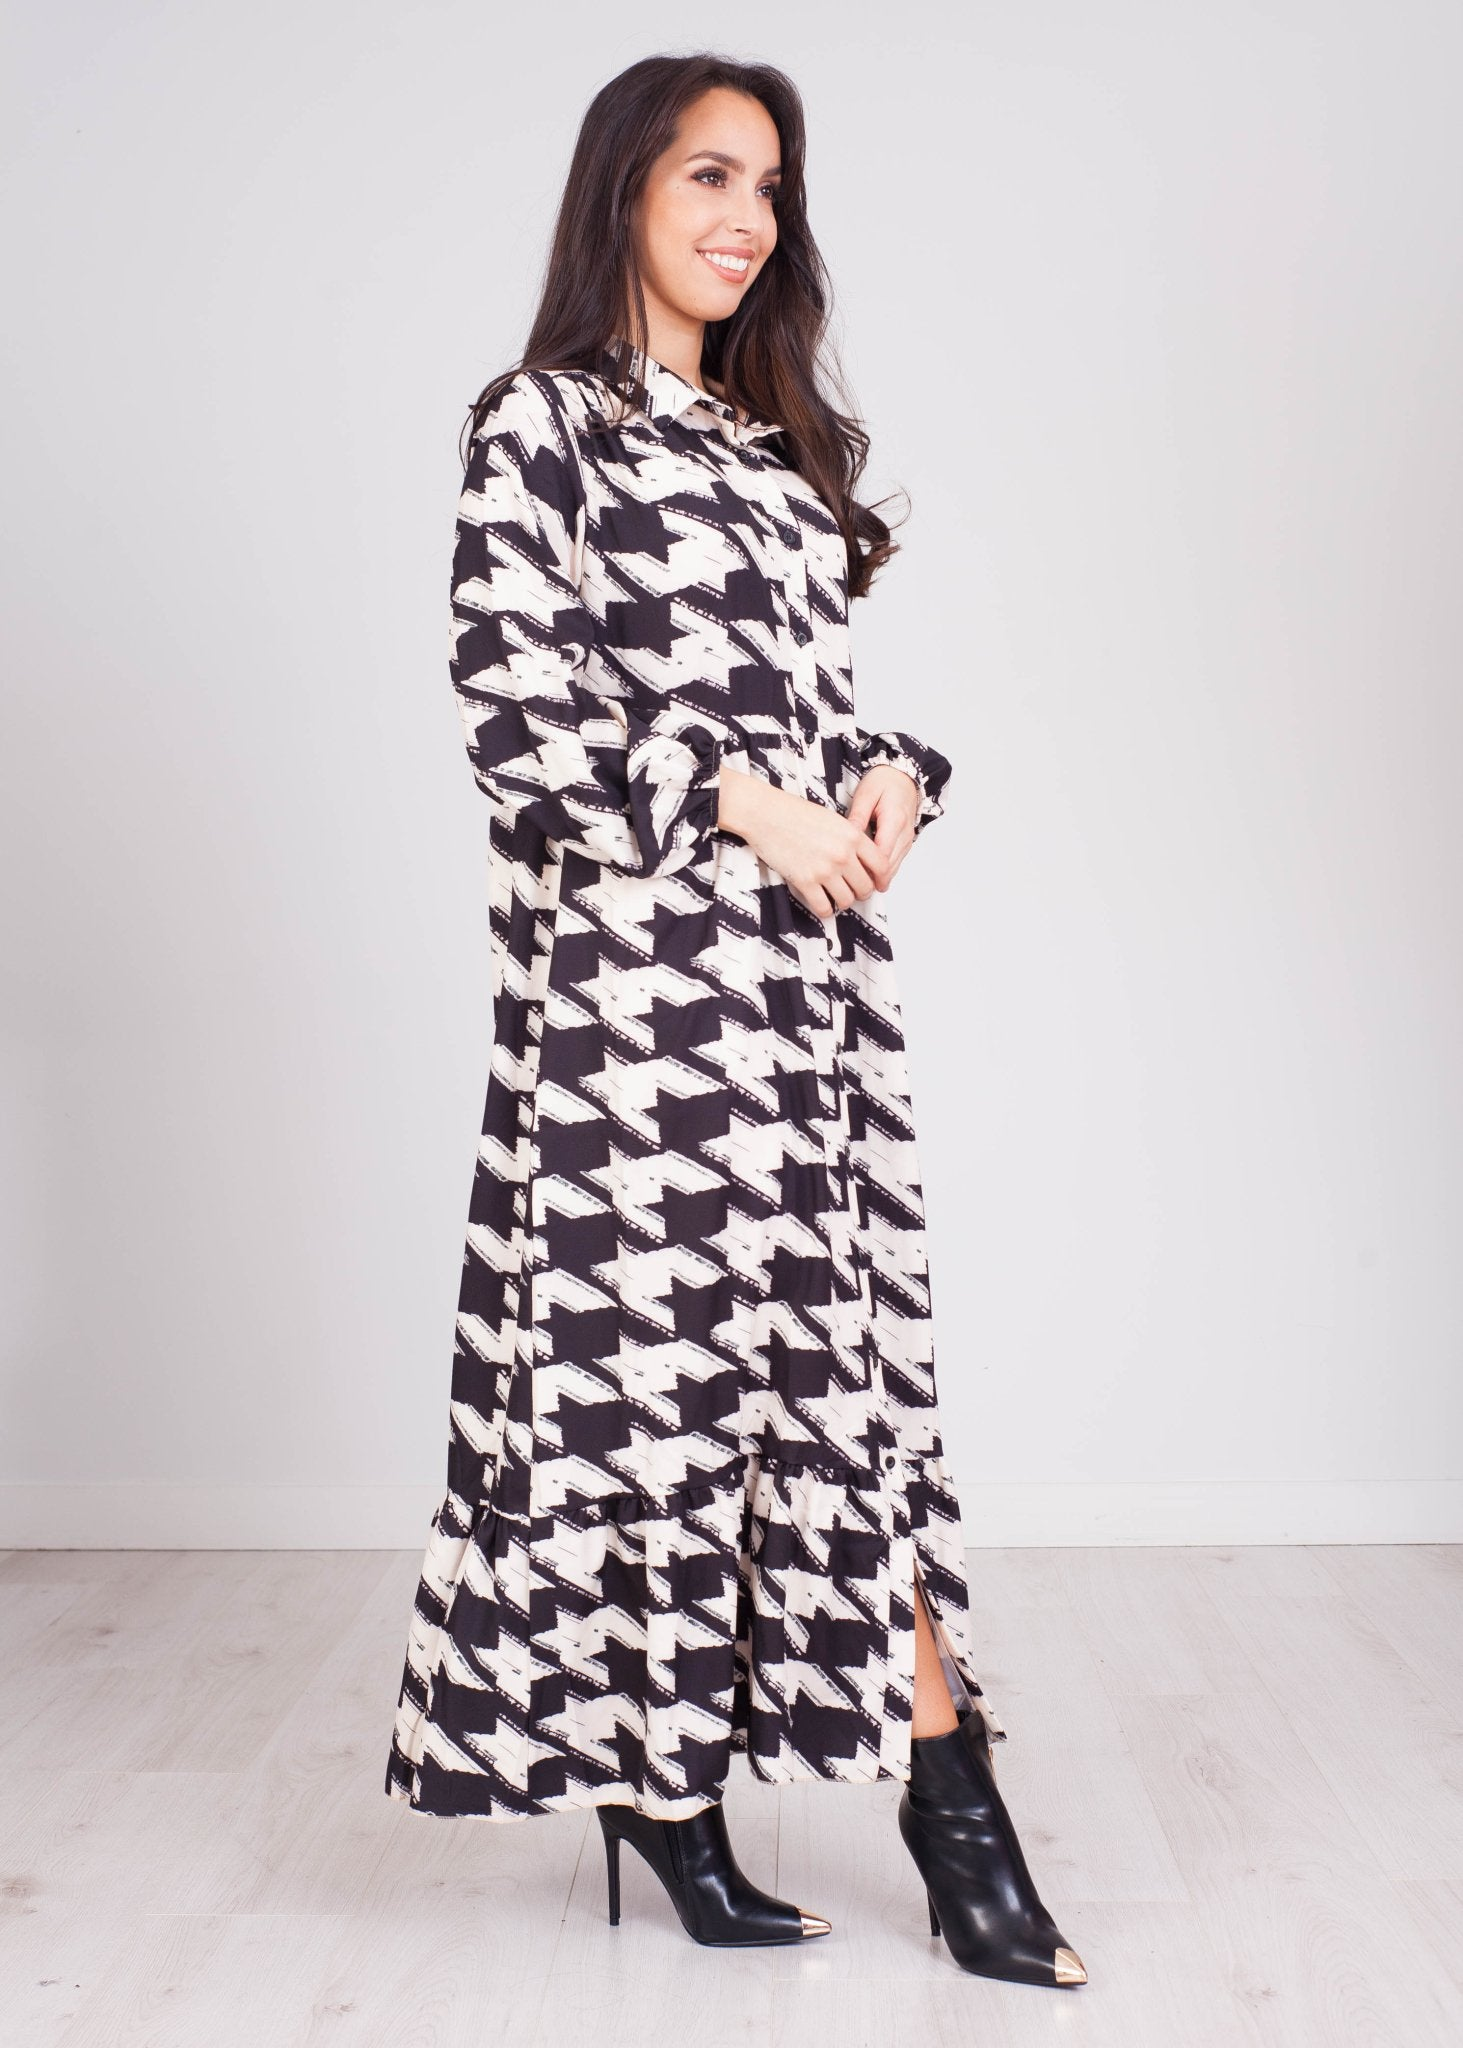 Gia Houndstooth Midi Dress - The Walk in Wardrobe